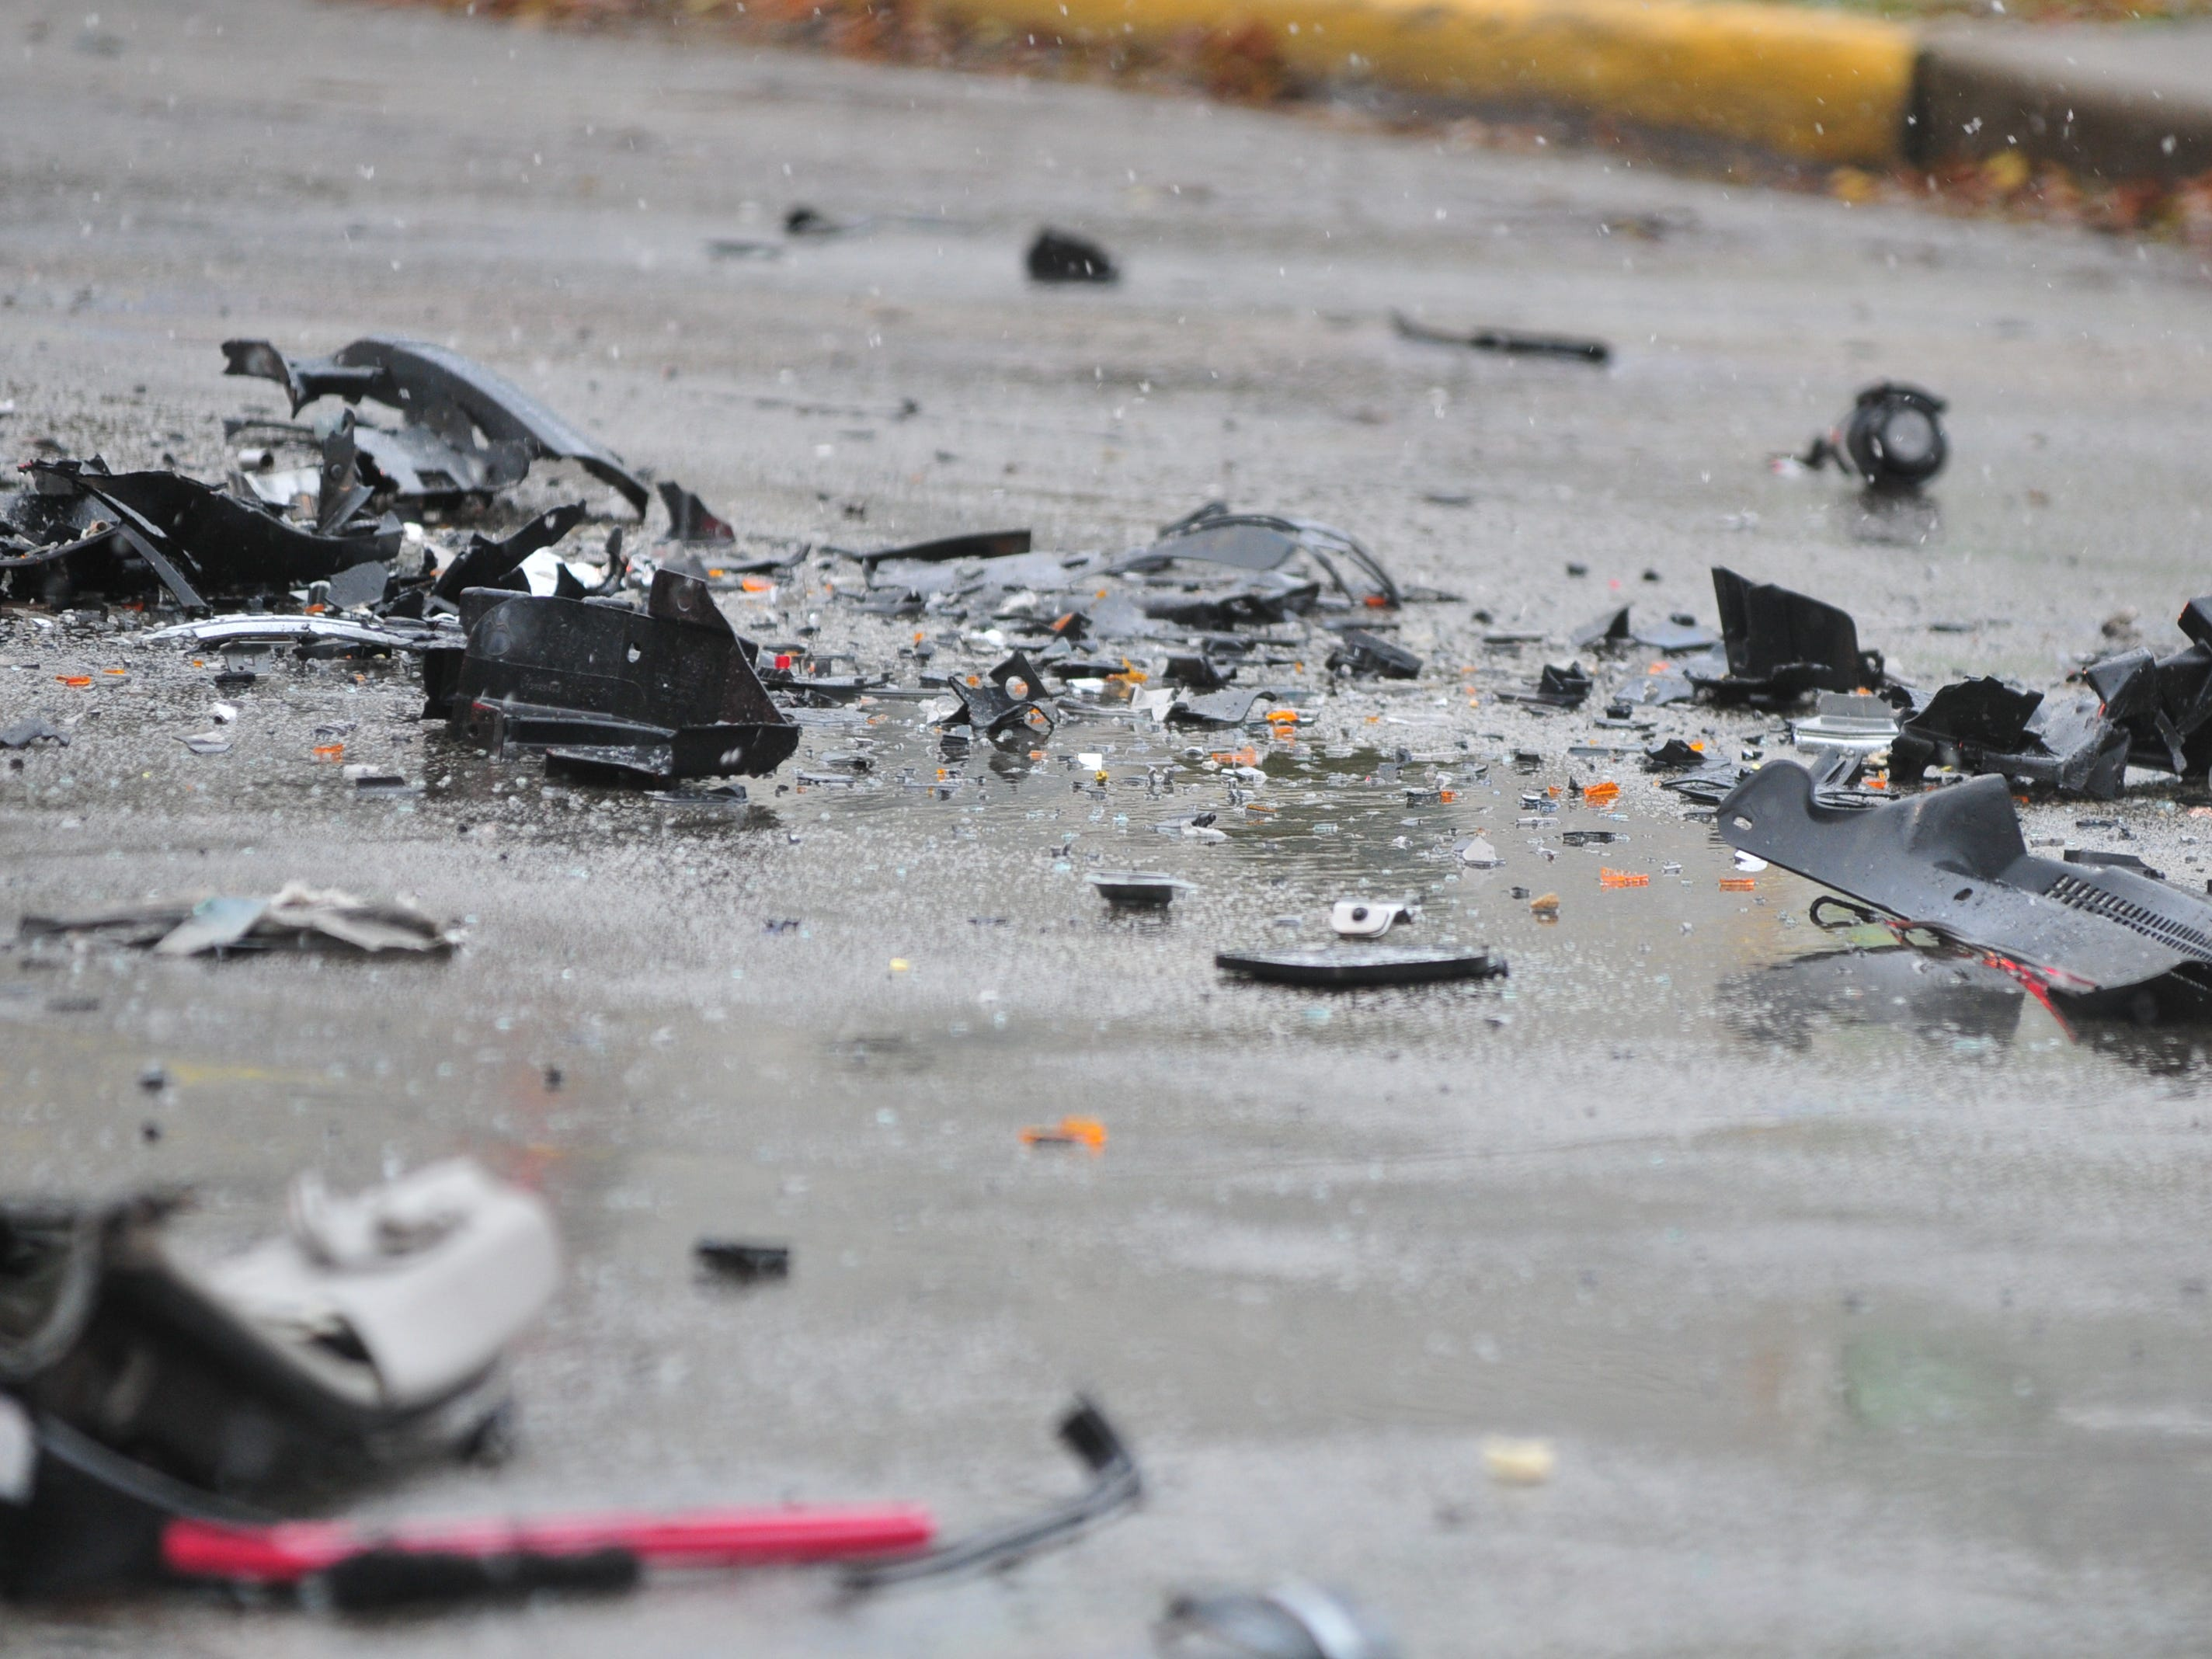 Debris from an accident litters Richmond Avenue on Thursday.